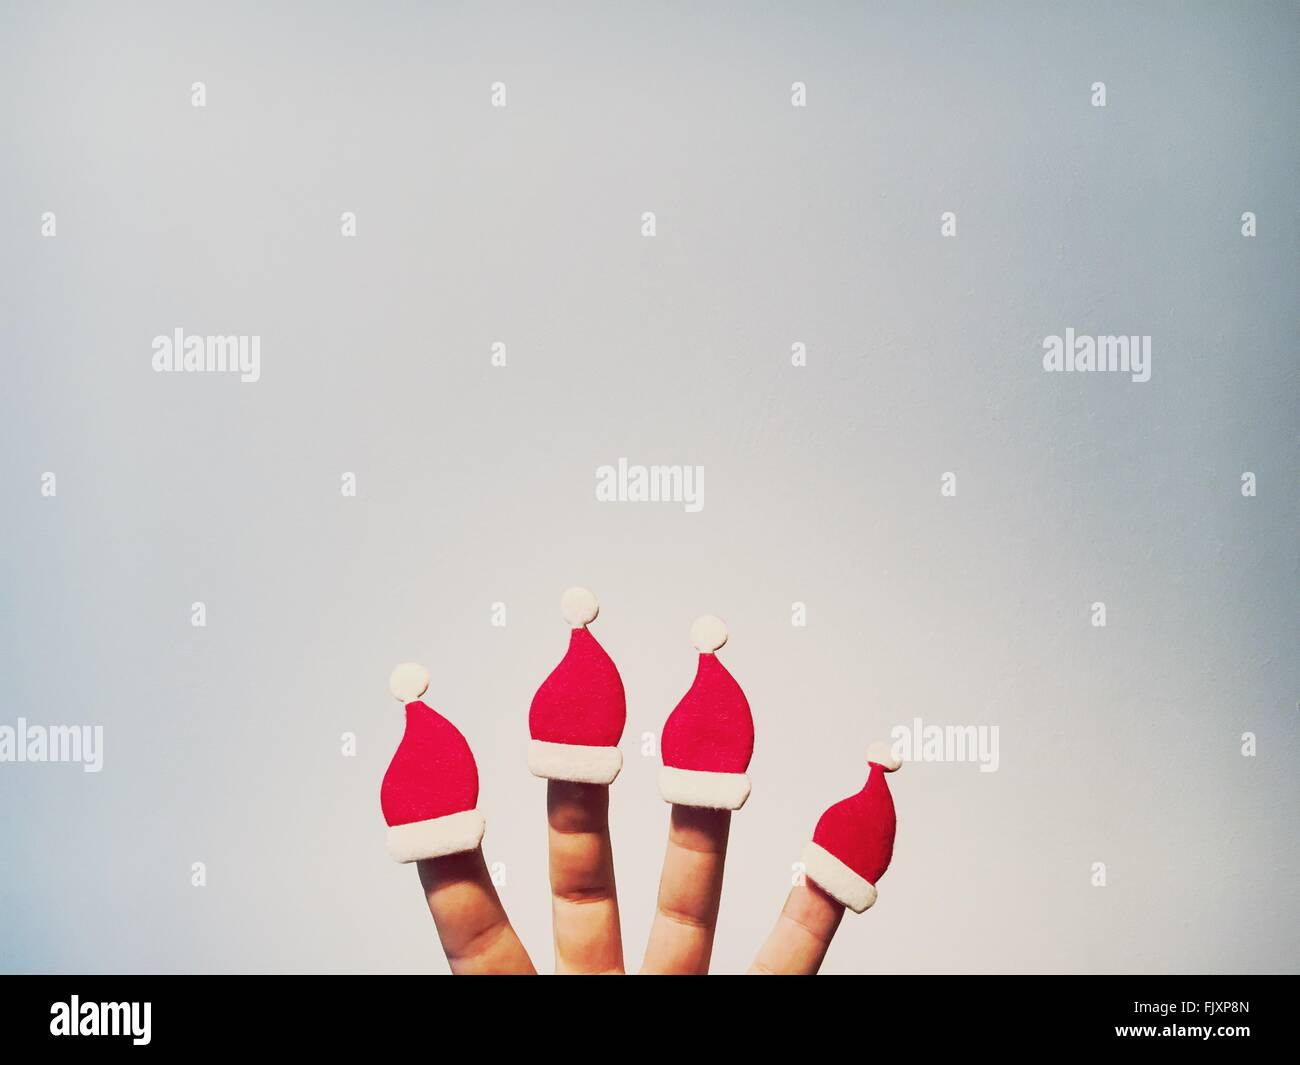 Cropped Image Of Hand With Santa Hats Against White Wall - Stock Image